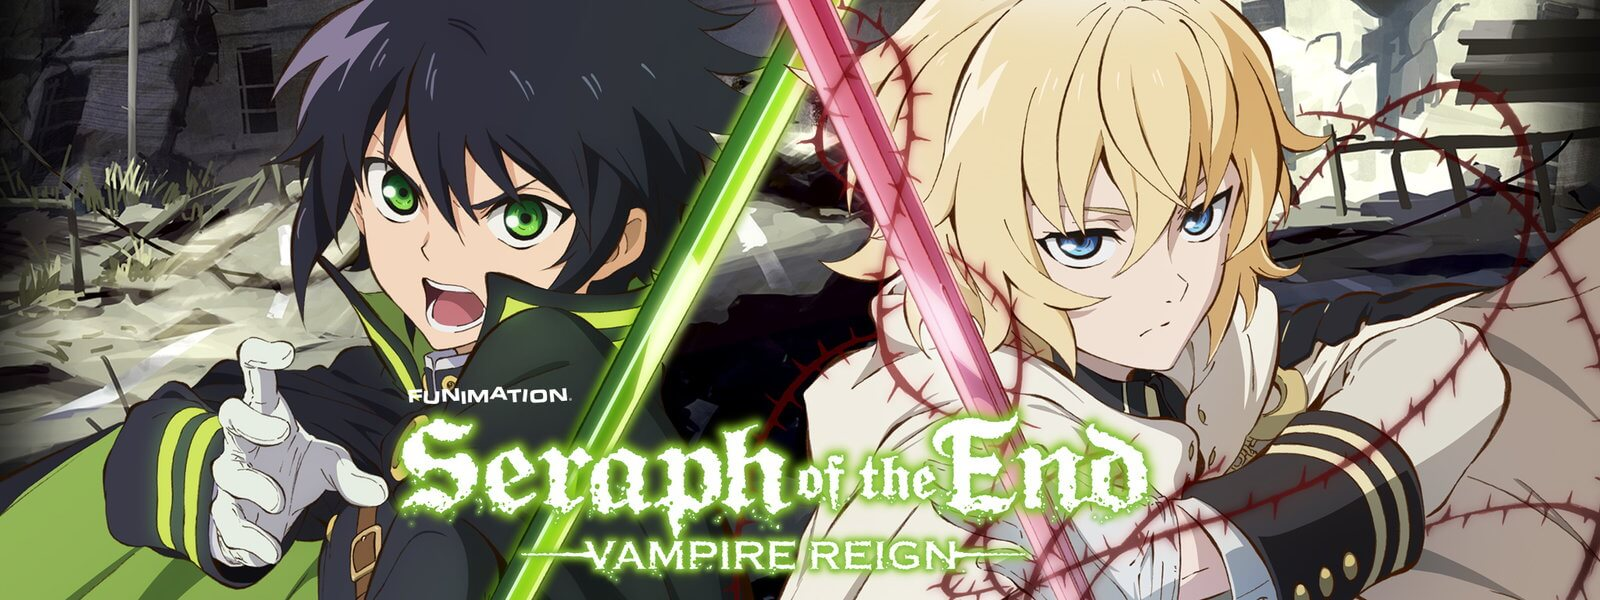 spearph of the end 1 - Seraph of the End Humans vs. Vamps Anime Now Available on Home Media